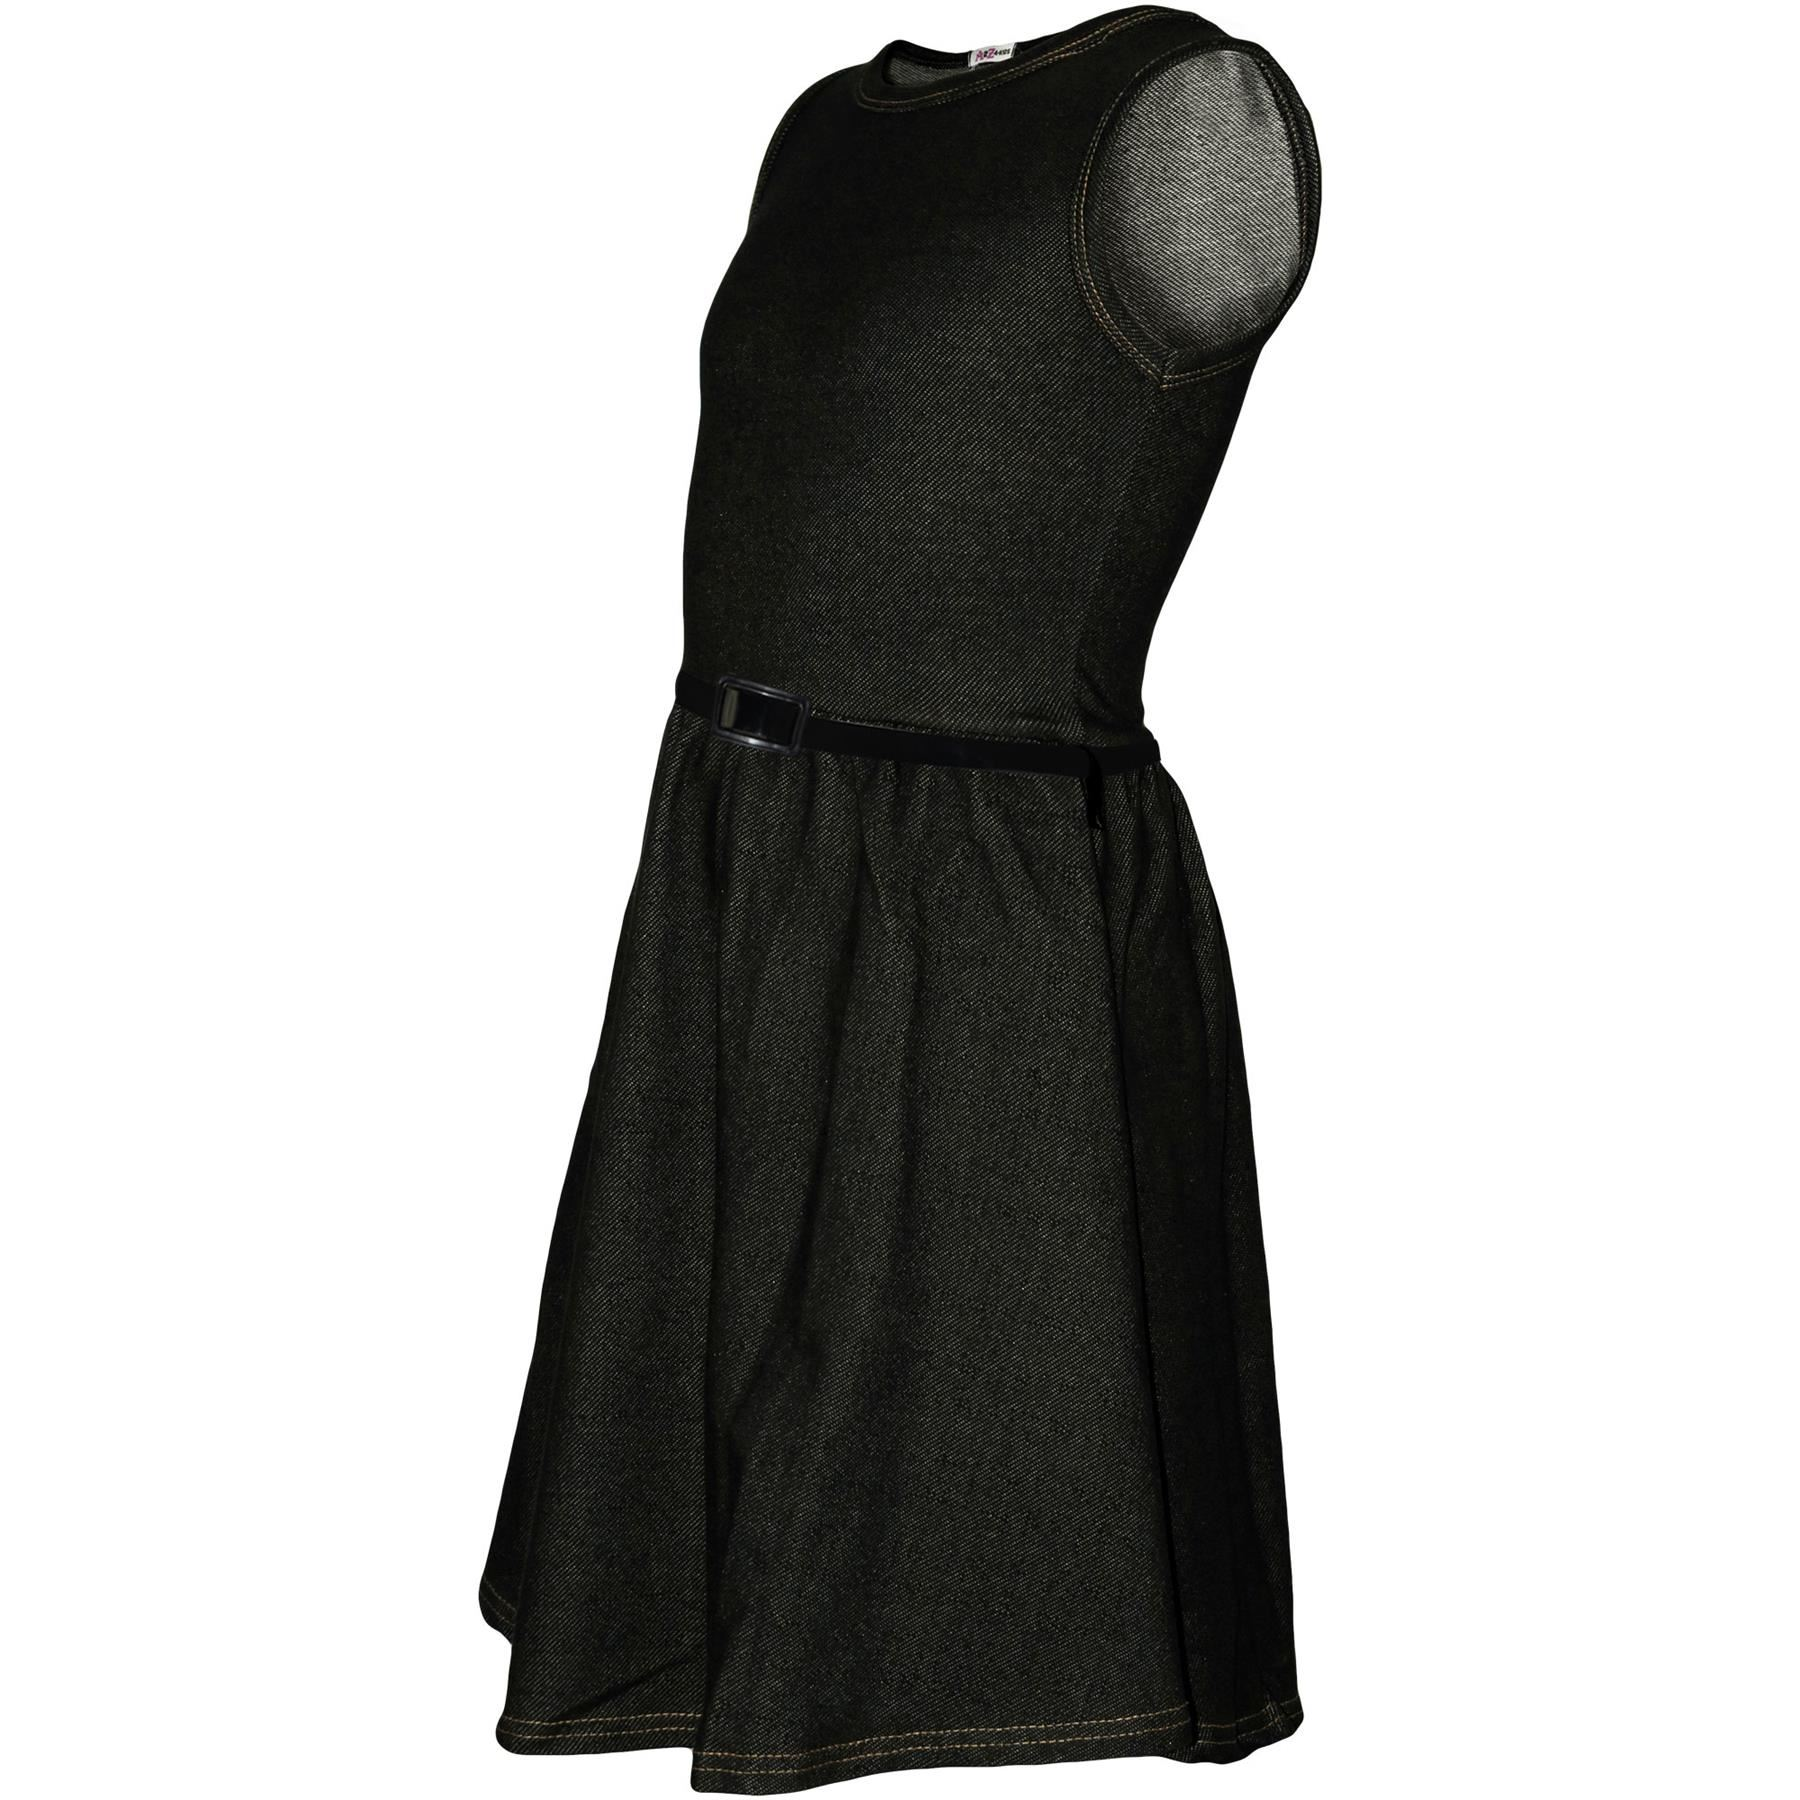 Girls-Skater-Dress-Kids-Party-Dresses-With-Free-Belt-5-6-7-8-9-10-11-12-13-Years thumbnail 24